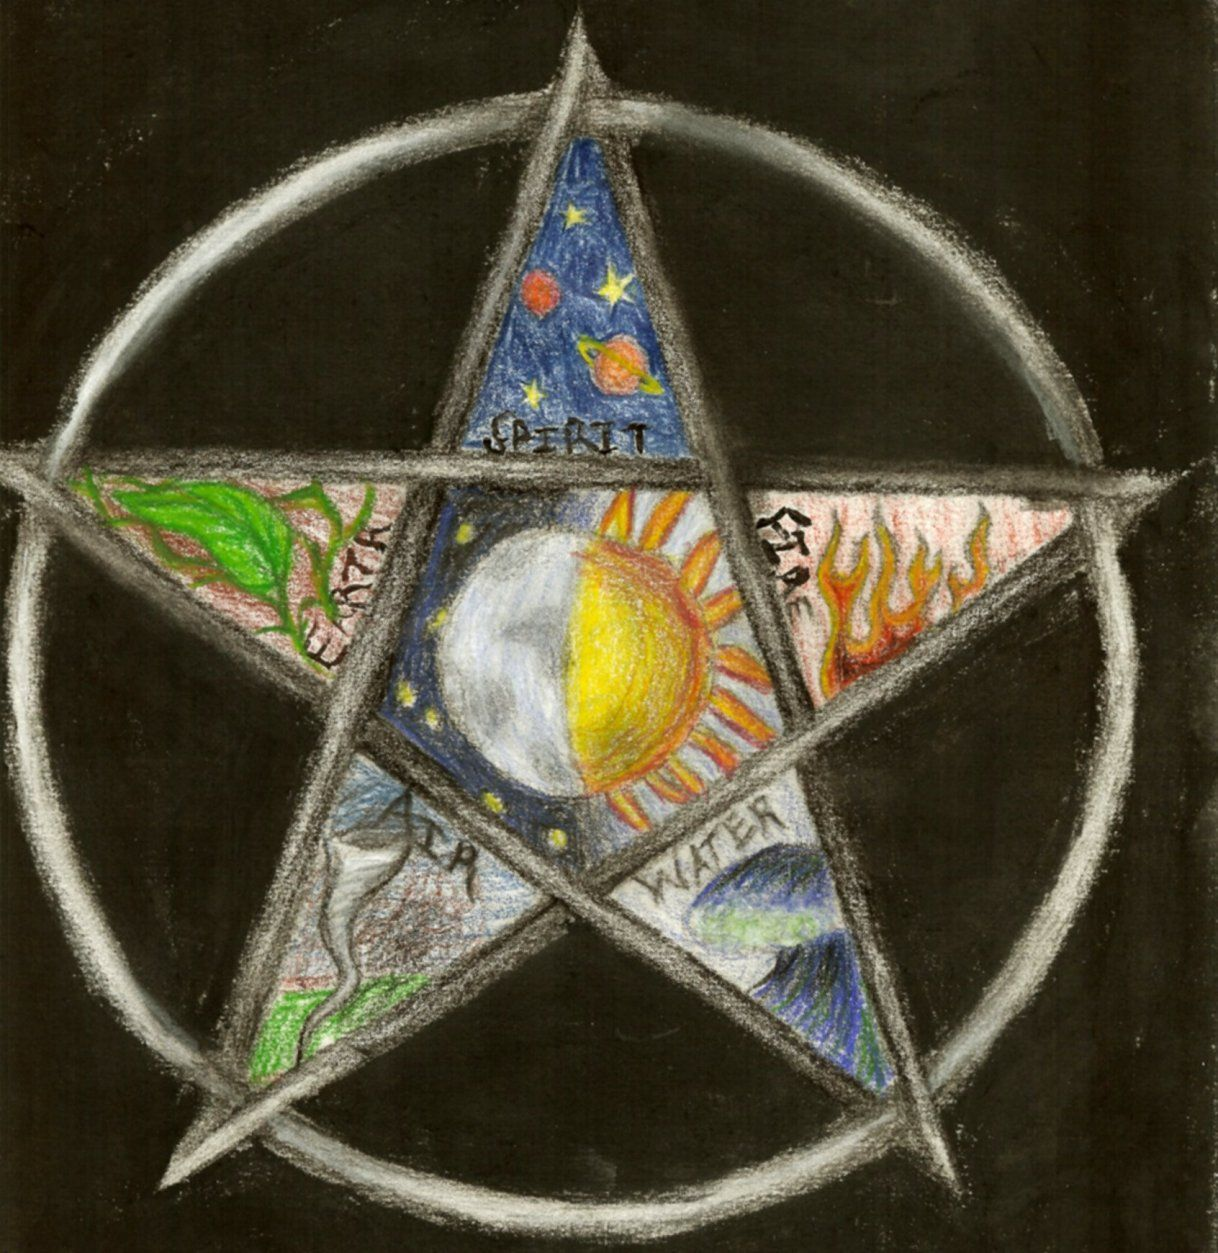 Pentacle With The 5 Elements Of Fire Air Water Earth And Spirt